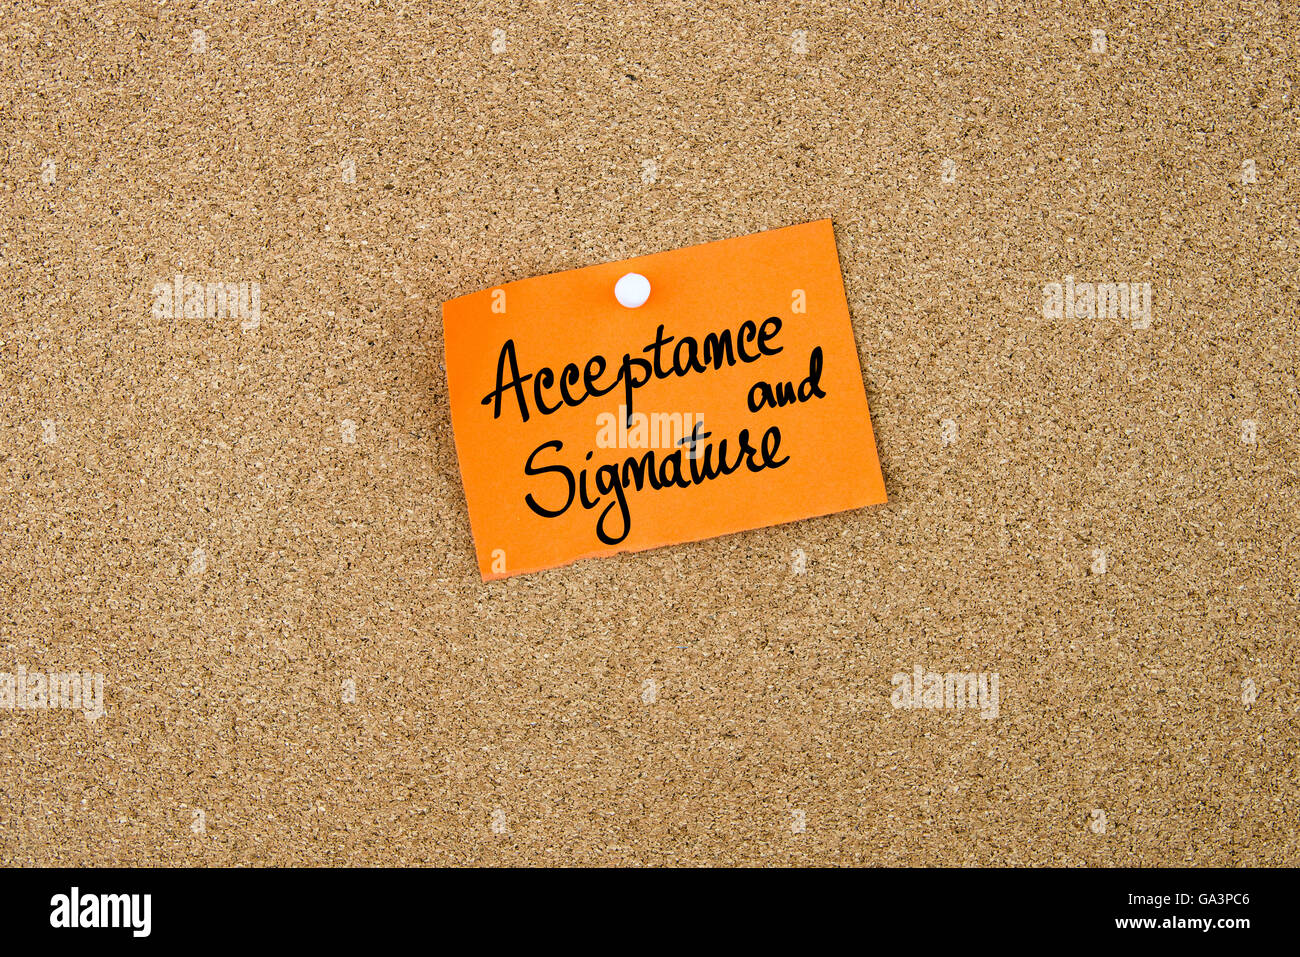 Acceptance and Signature written on orange paper note note pinned on cork board with white thumbtack, copy space - Stock Image